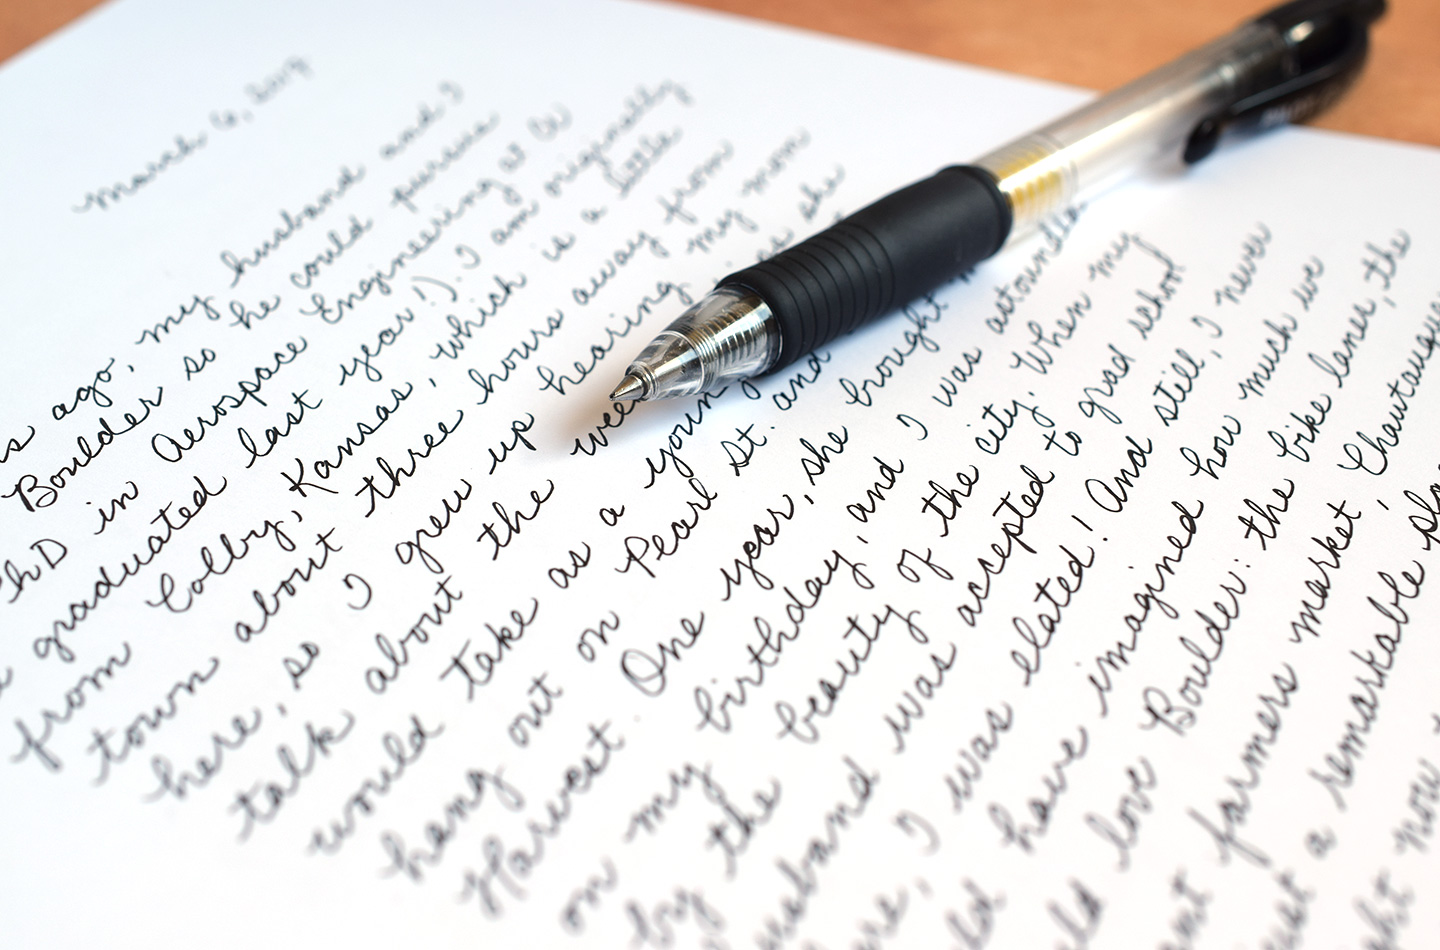 8 Tips To Improve Your Handwriting (Plus A Free Worksheet) – The Postman's  Knock